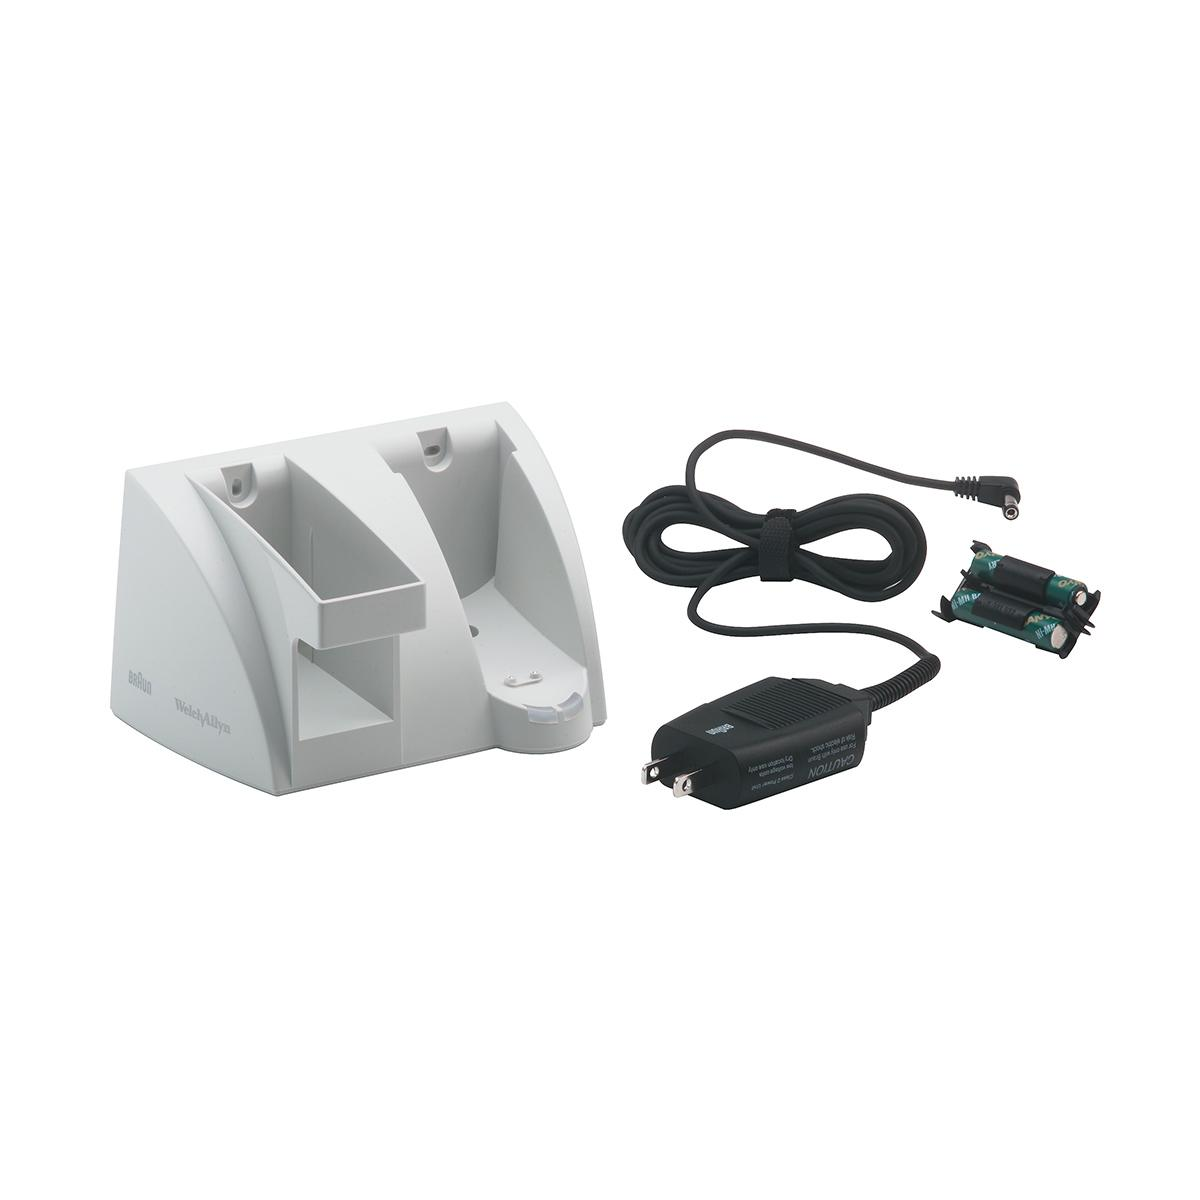 A charging cradle for the Welch Allyn Welch Braun ThermoScan PRO 4000. The unit has a black, detachable power source